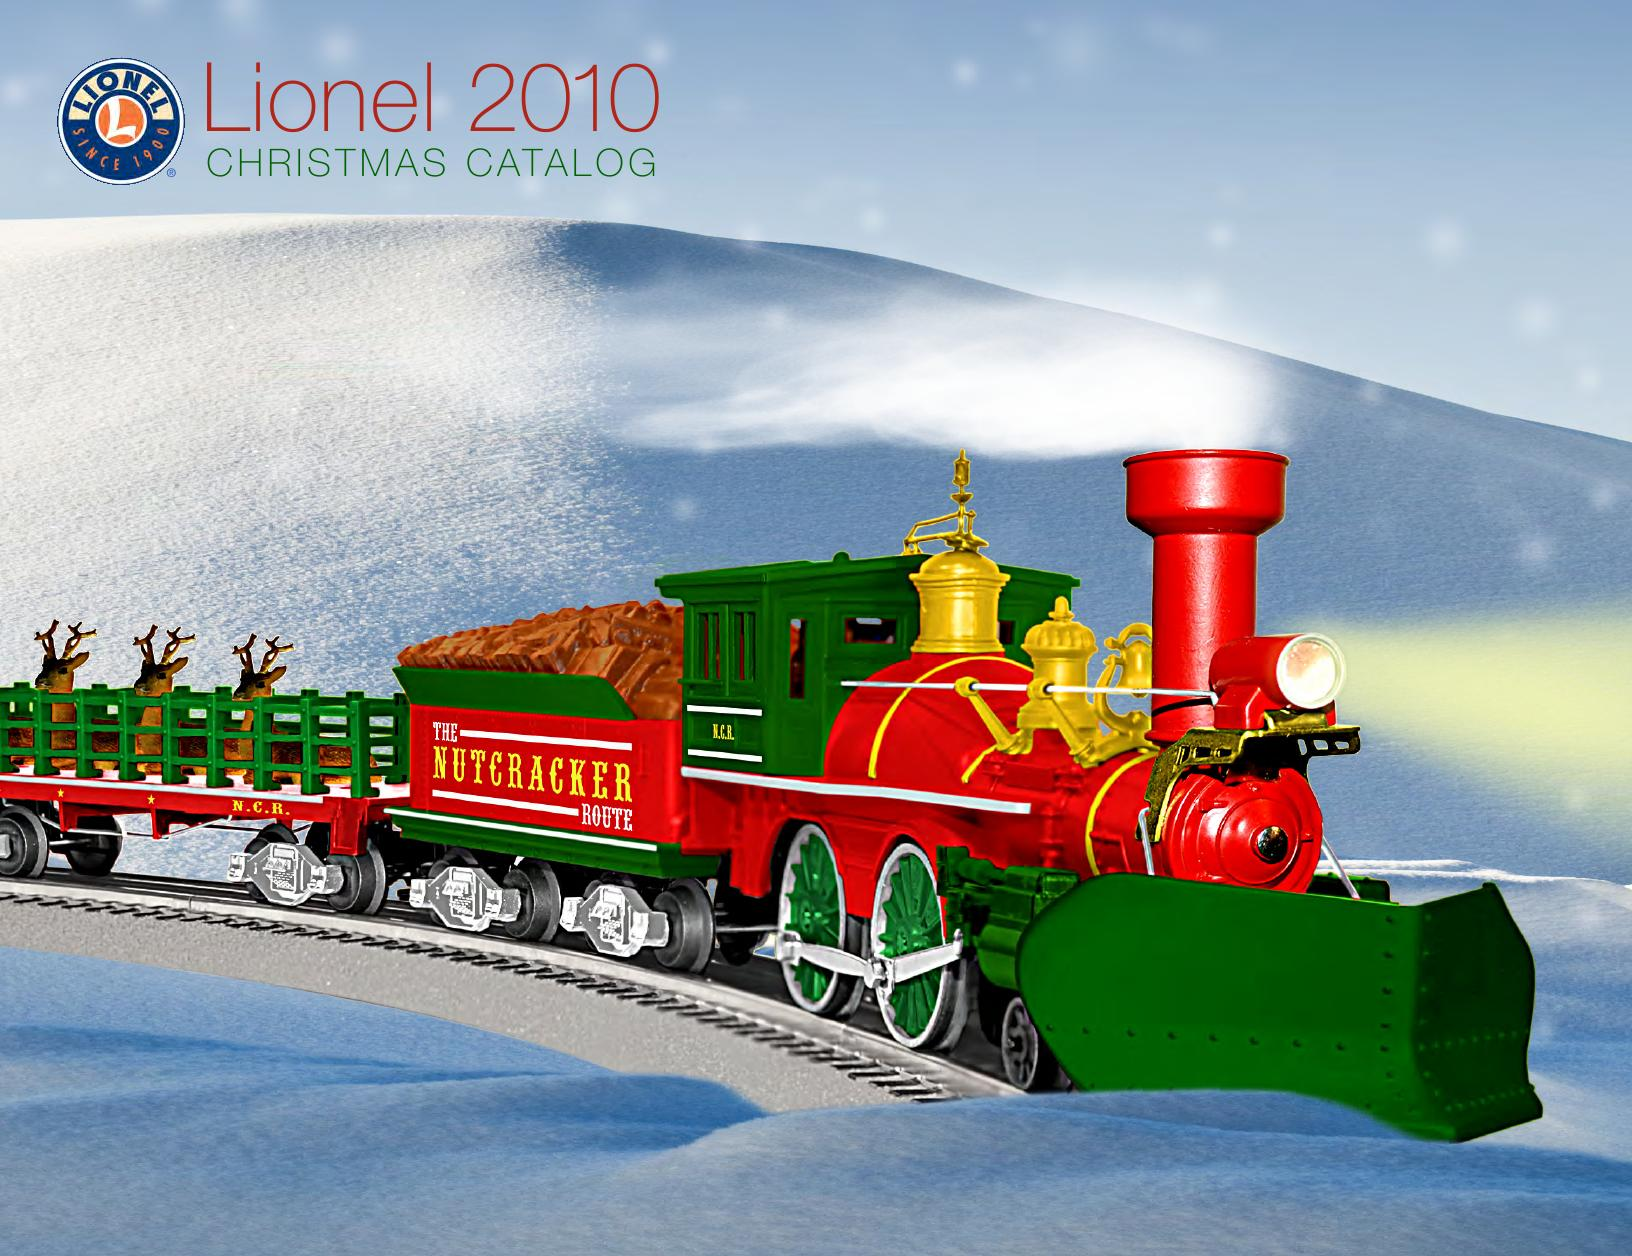 Train Gifts Collectibles The Lionel Trains Catalog